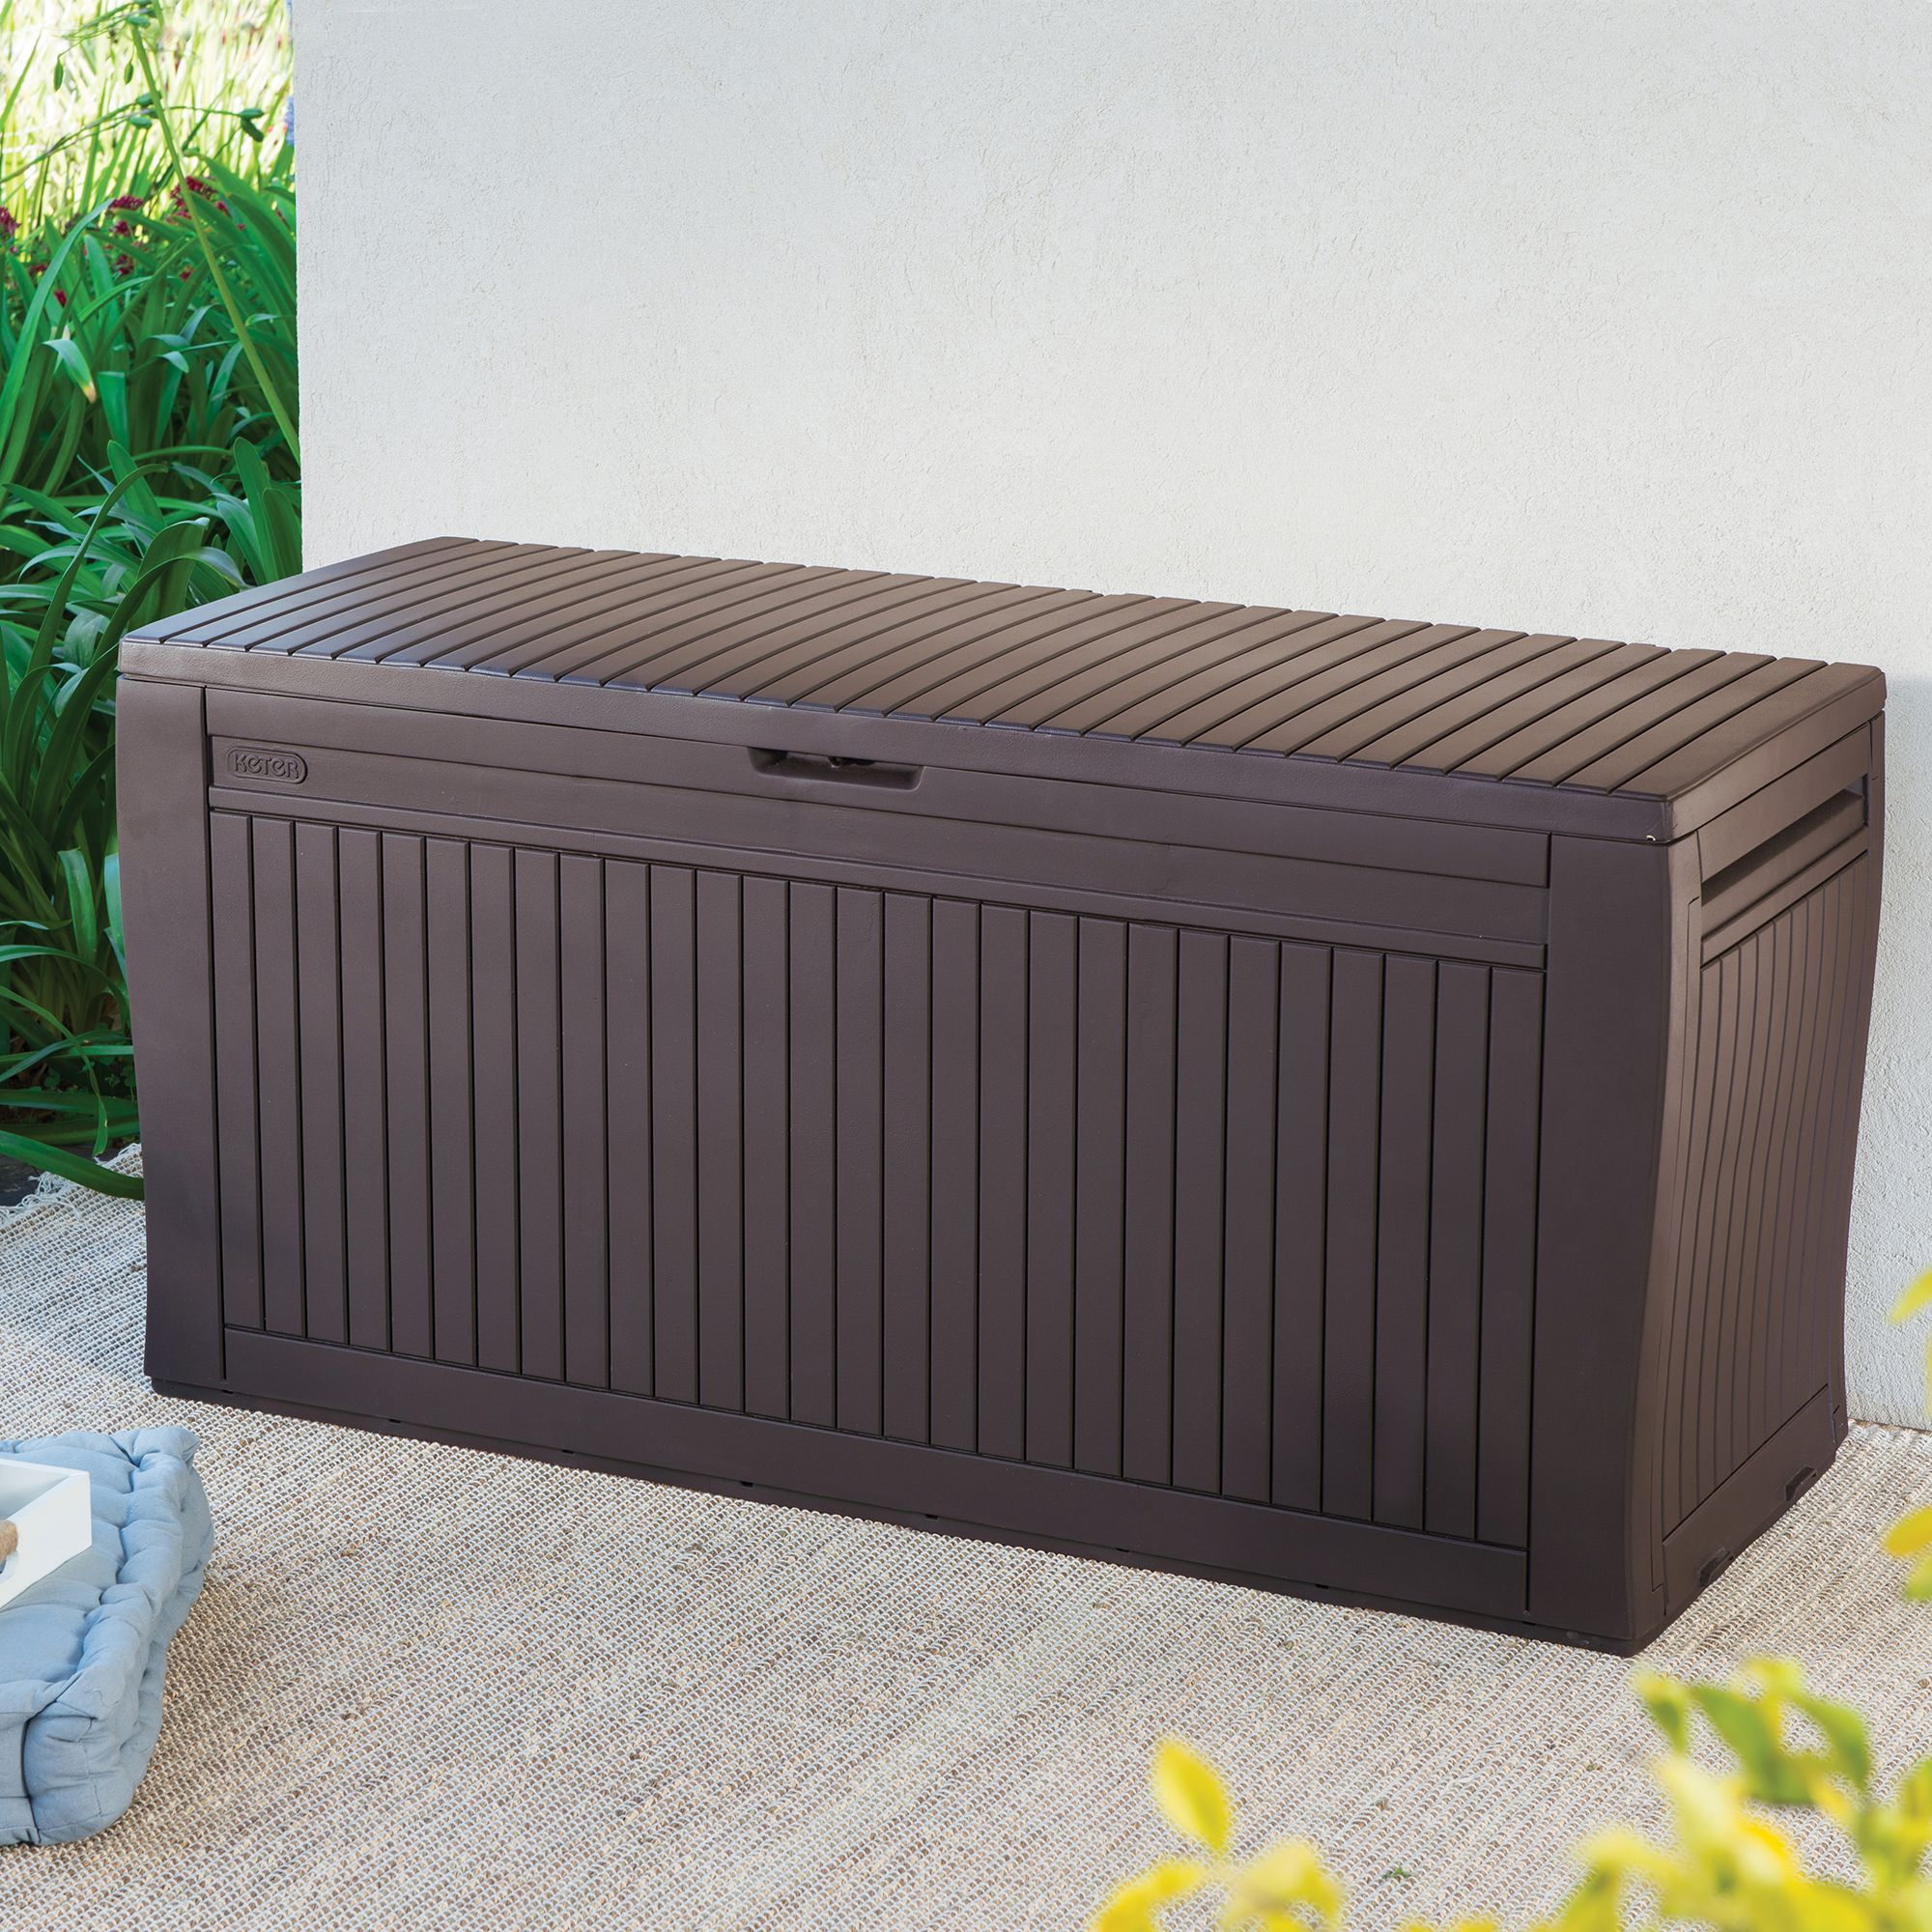 Comfy Wood Effect Plastic Garden Storage Box Departments Diy At B Q